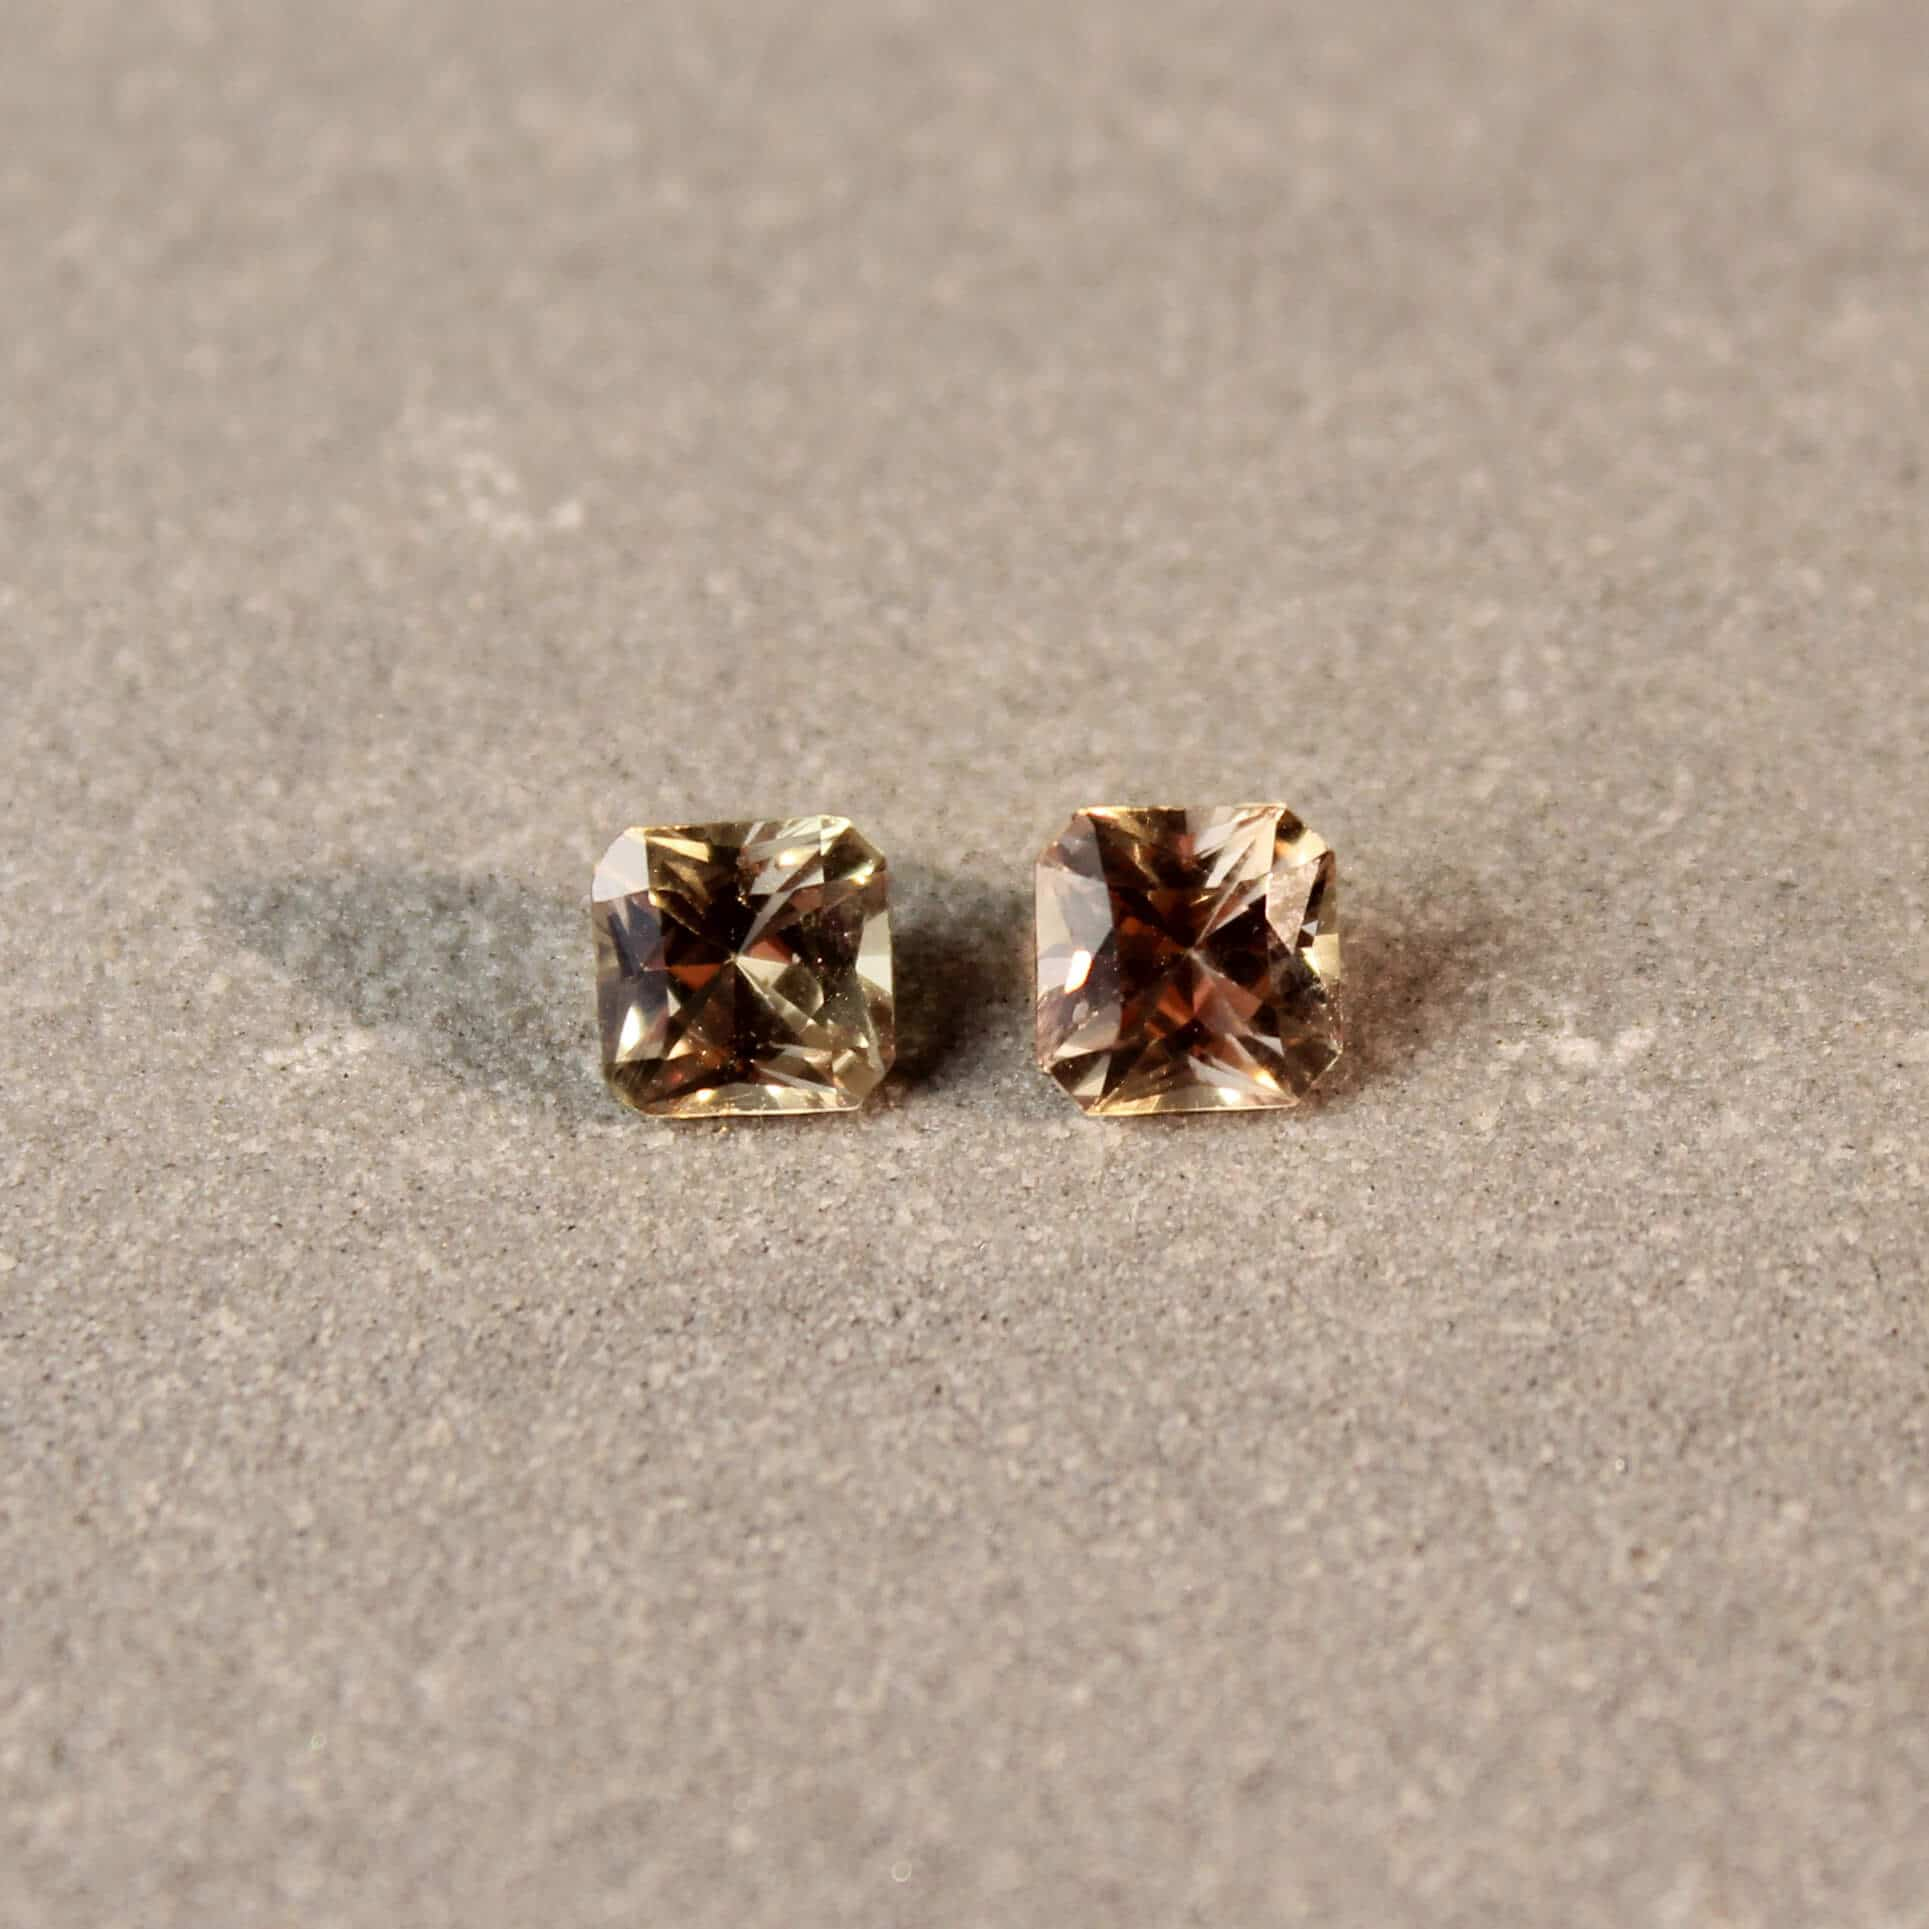 1.29 ct brownish yellow radiant sapphire pair